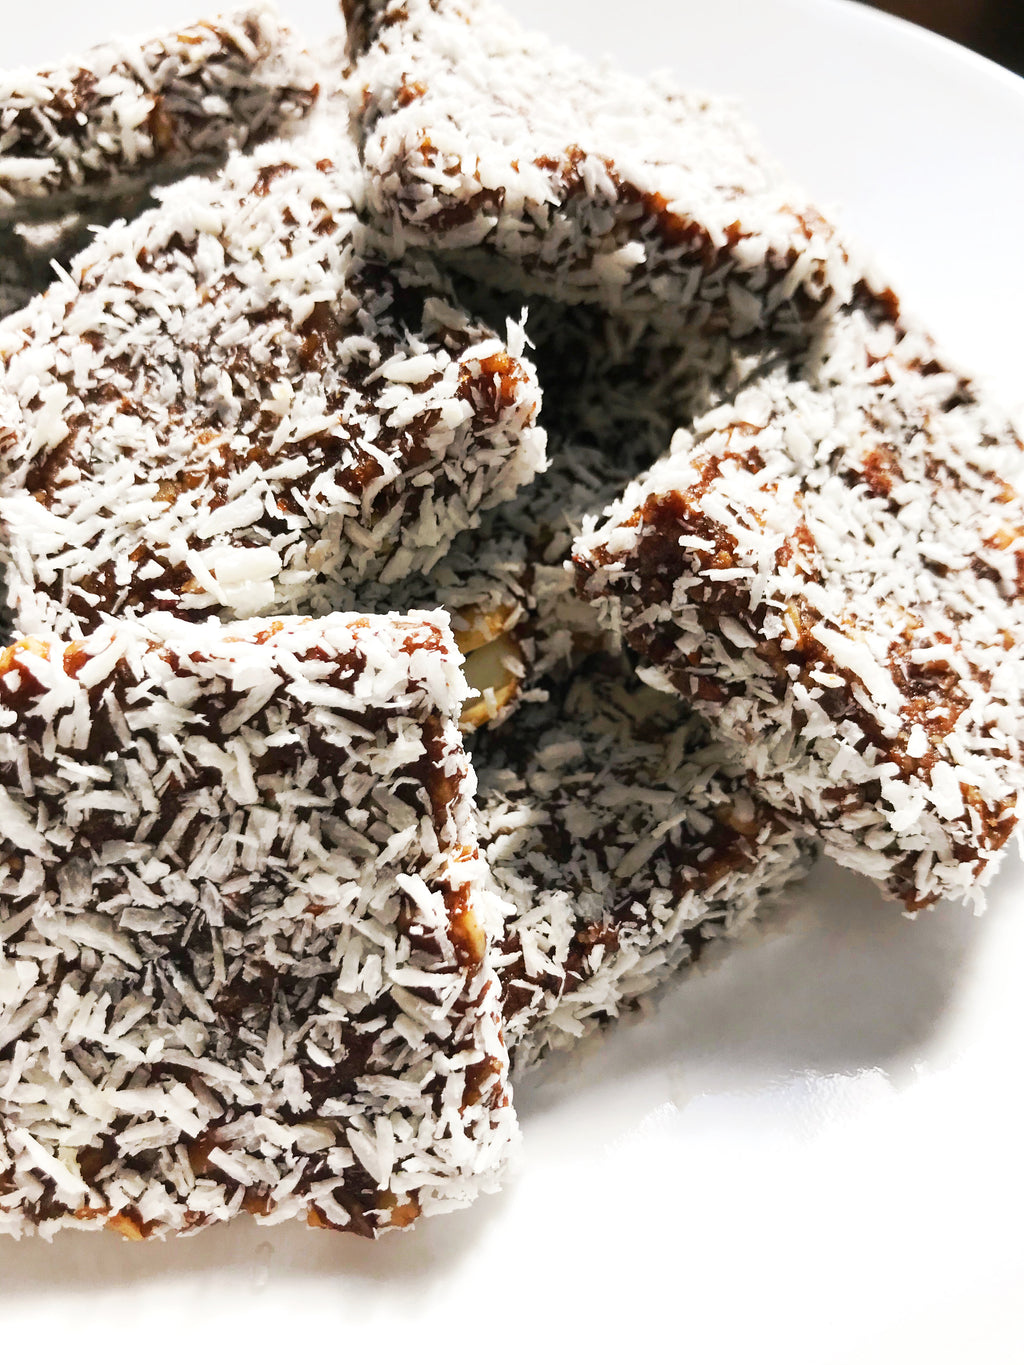 Chocolate & Coconut Date Bars